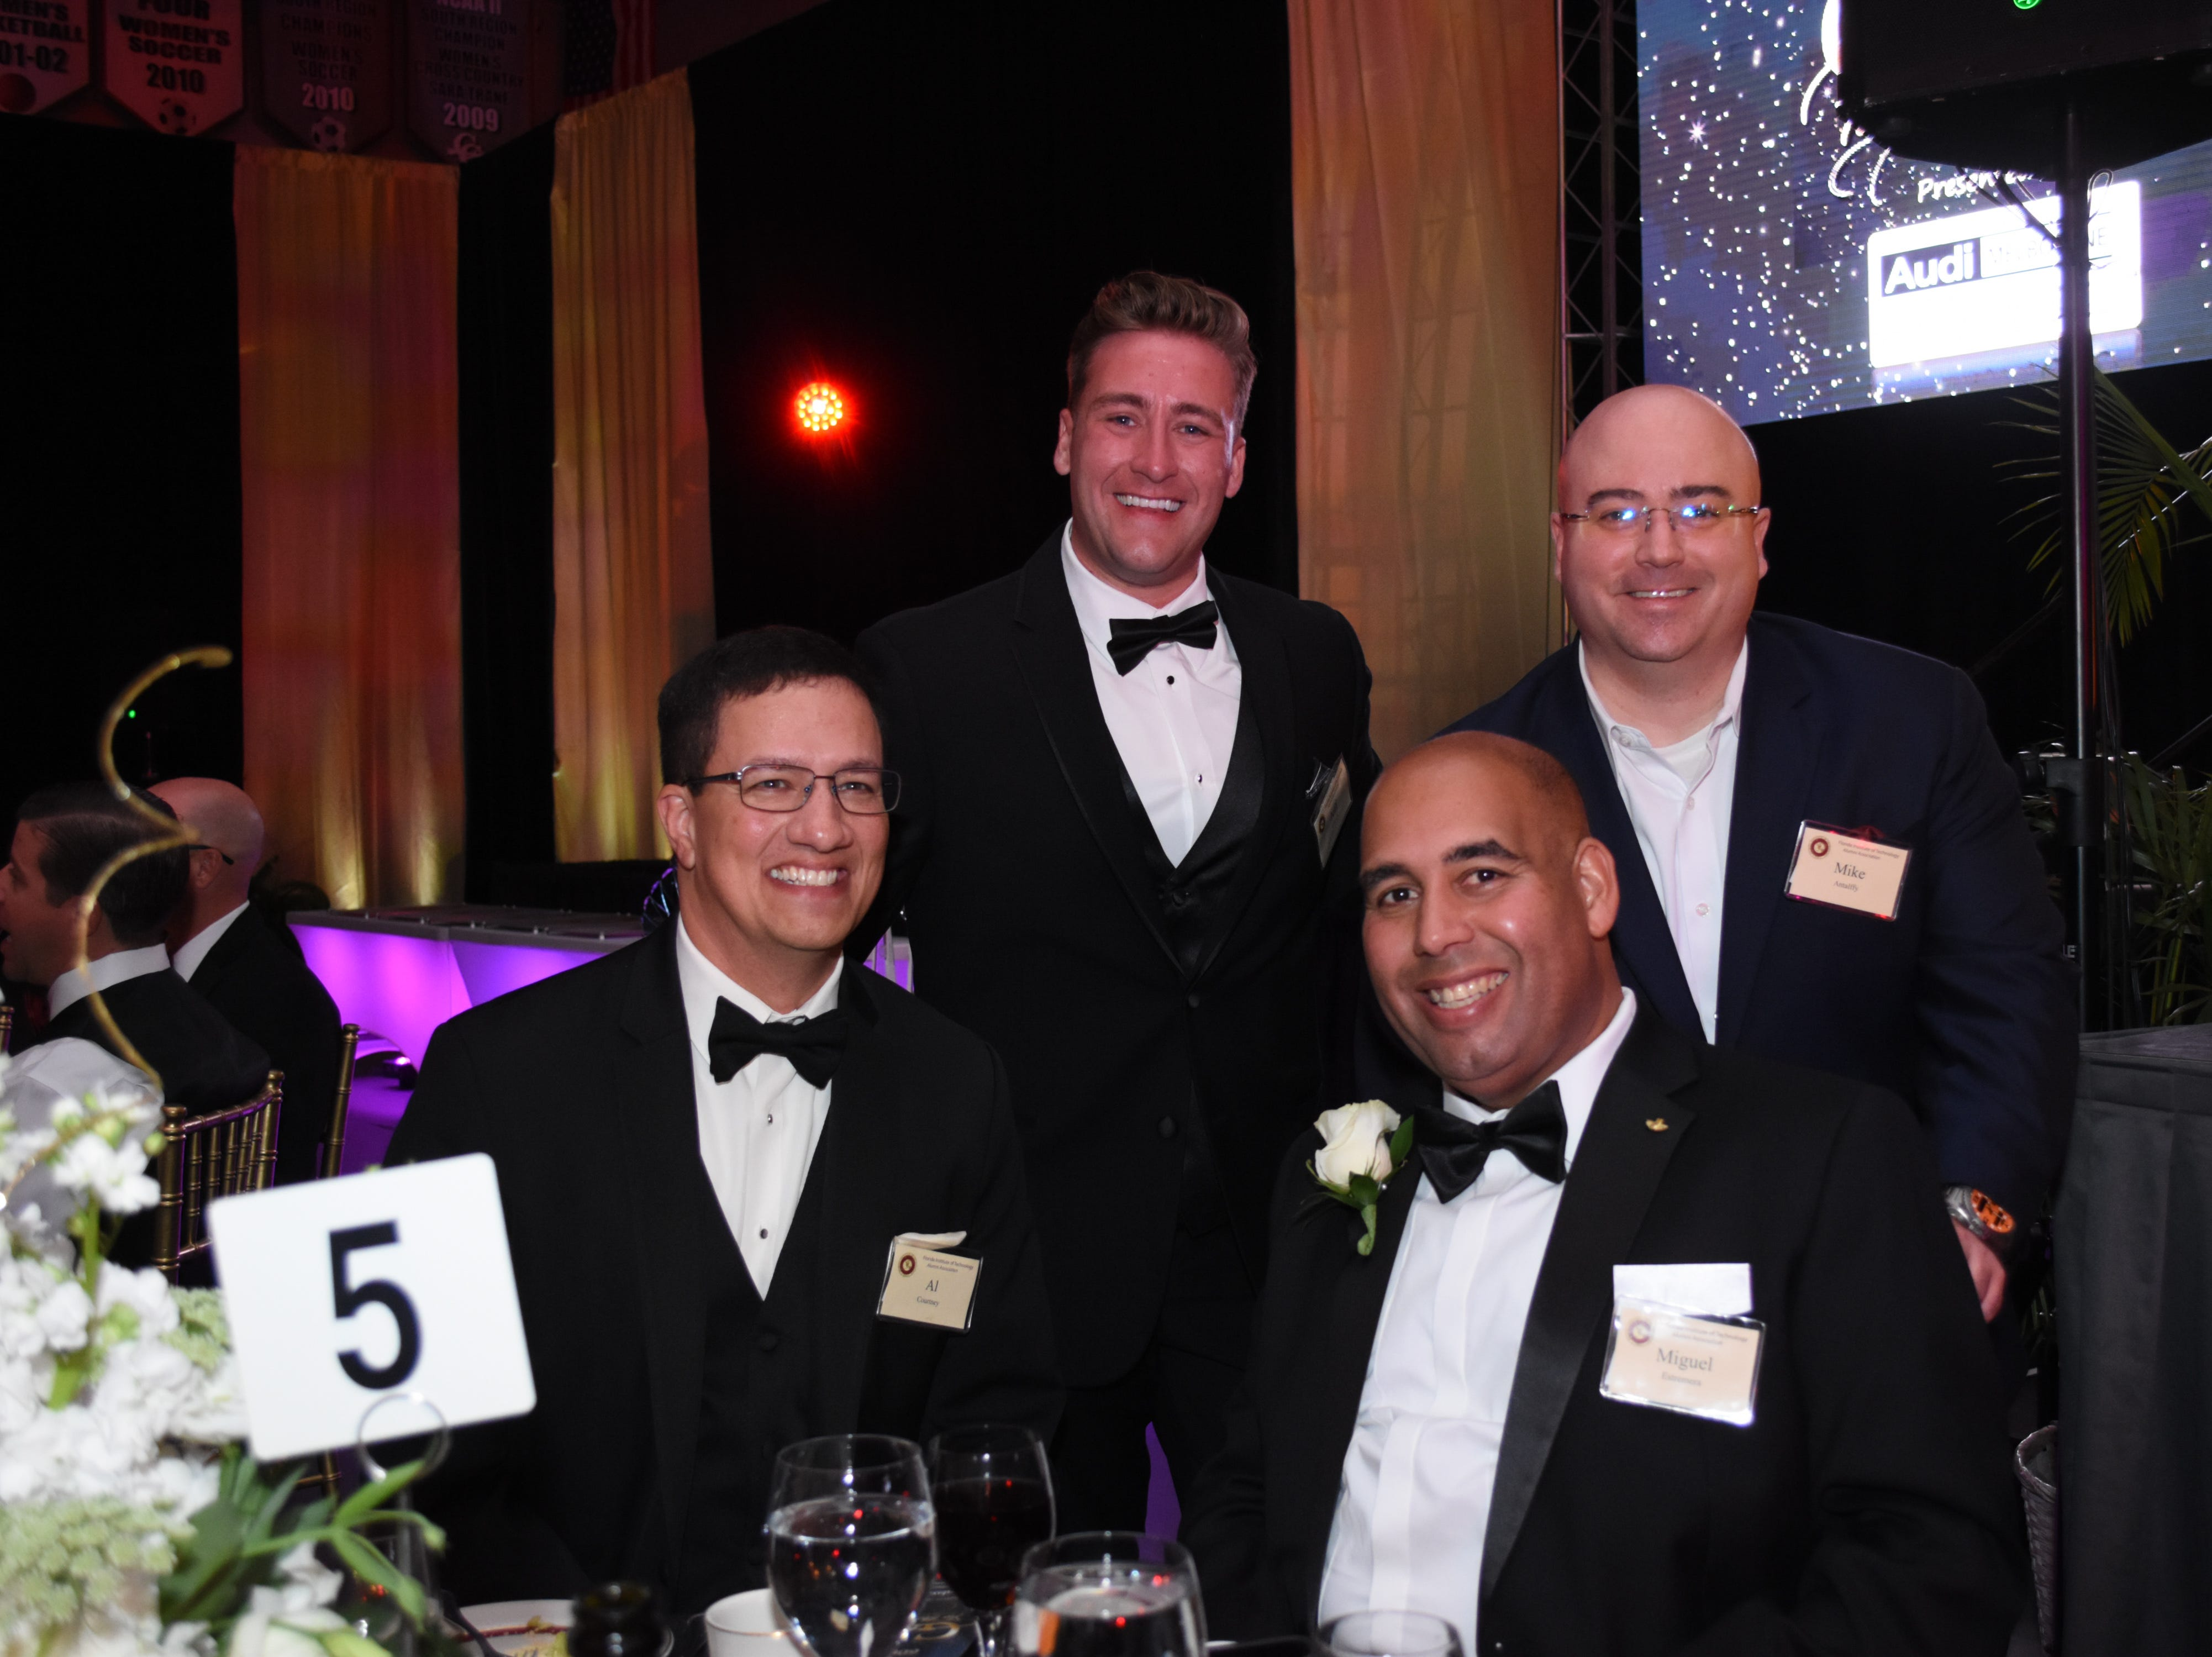 Mike Antalffy, Skurla Award recipient Miguel Estrenera, Al Courtney and Jeff Ciarcia at Florida Tech's 60th Anniversary Homecoming Gala Oct. 13, 2018, at the Clemente Center.